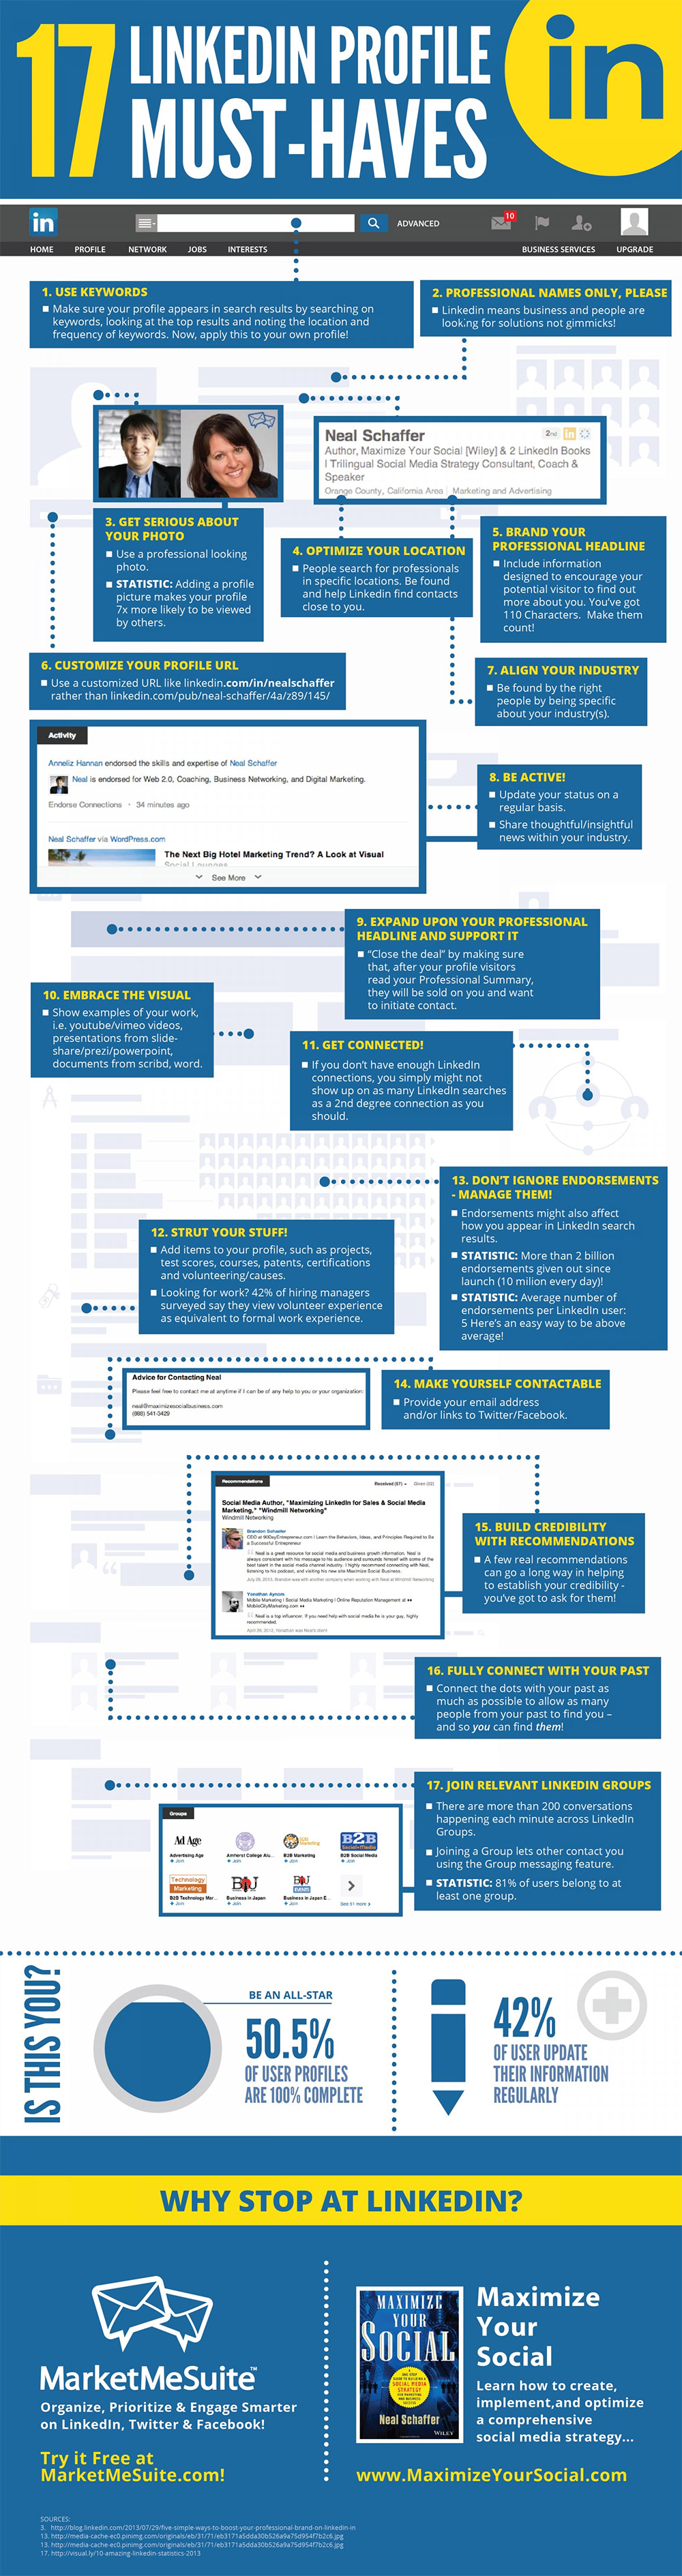 1393271821-17-must-have-features-linkedin-profile-infographic